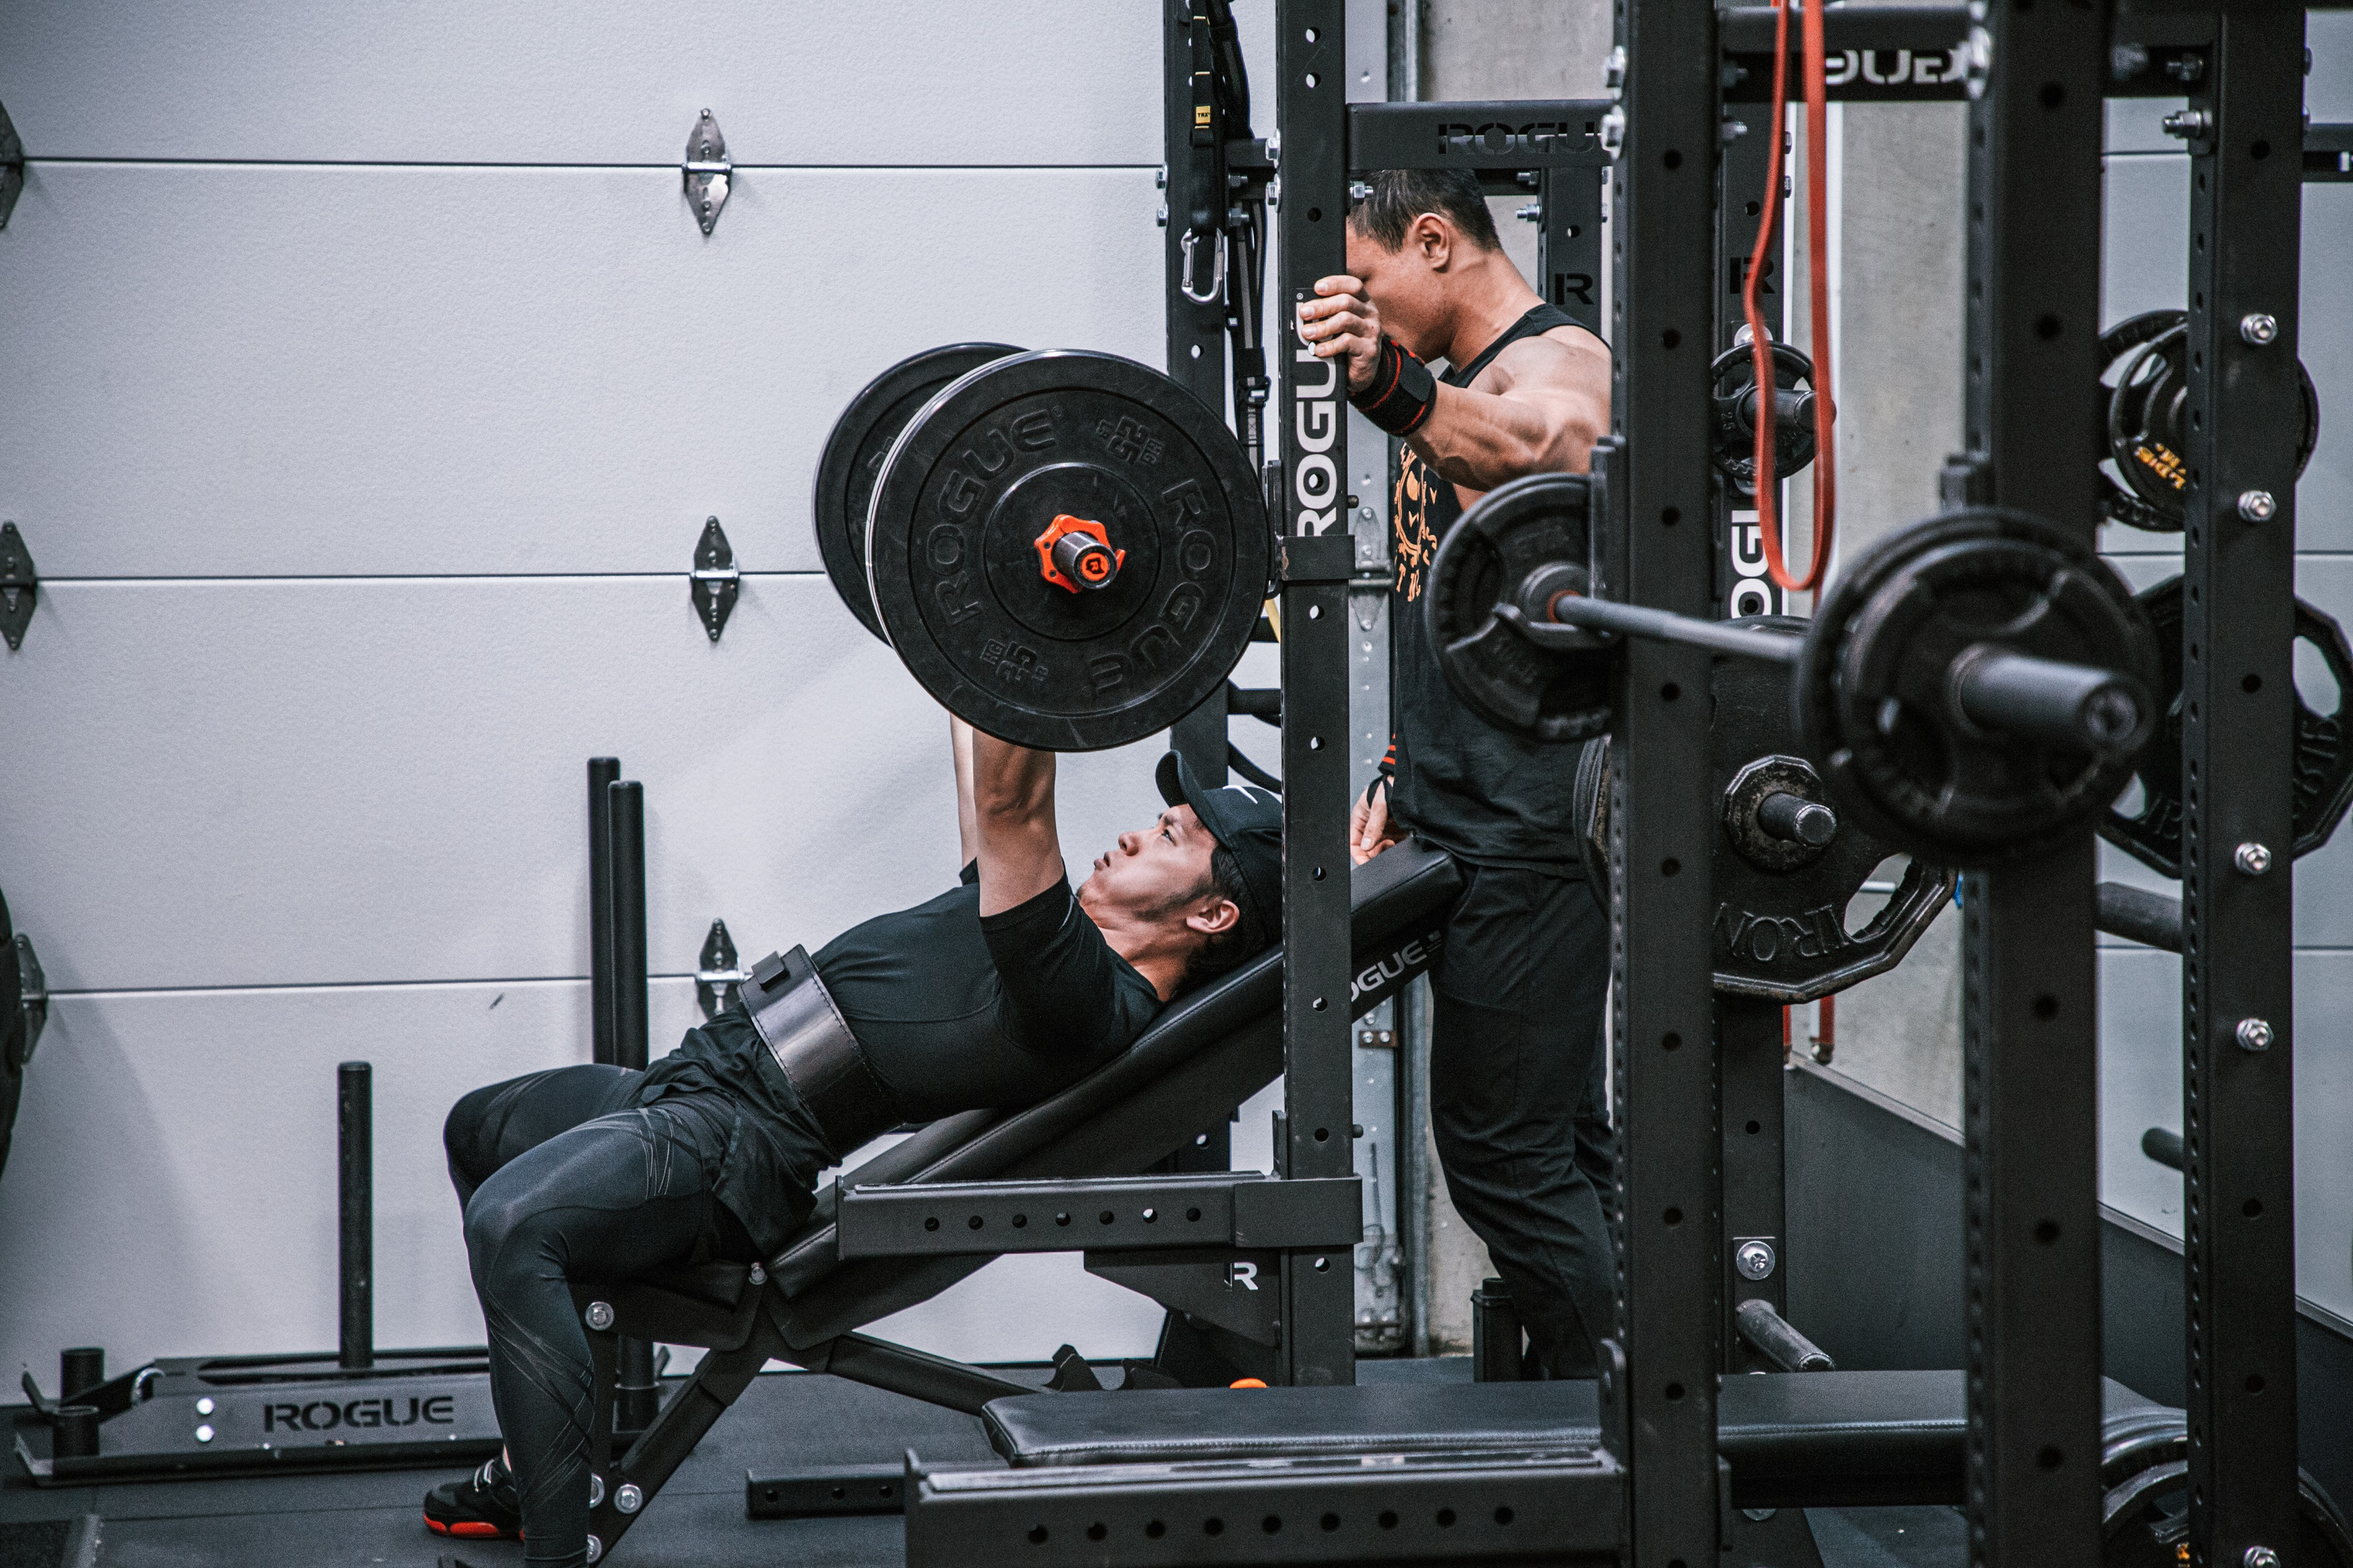 What are the 6 staple exercises everyone at the gym must do? Why should you do these 6 exercises? If you have been working out for a while but your gains are stalling; or you are new to working out and need advice on what exercises to start with, this article is for you.